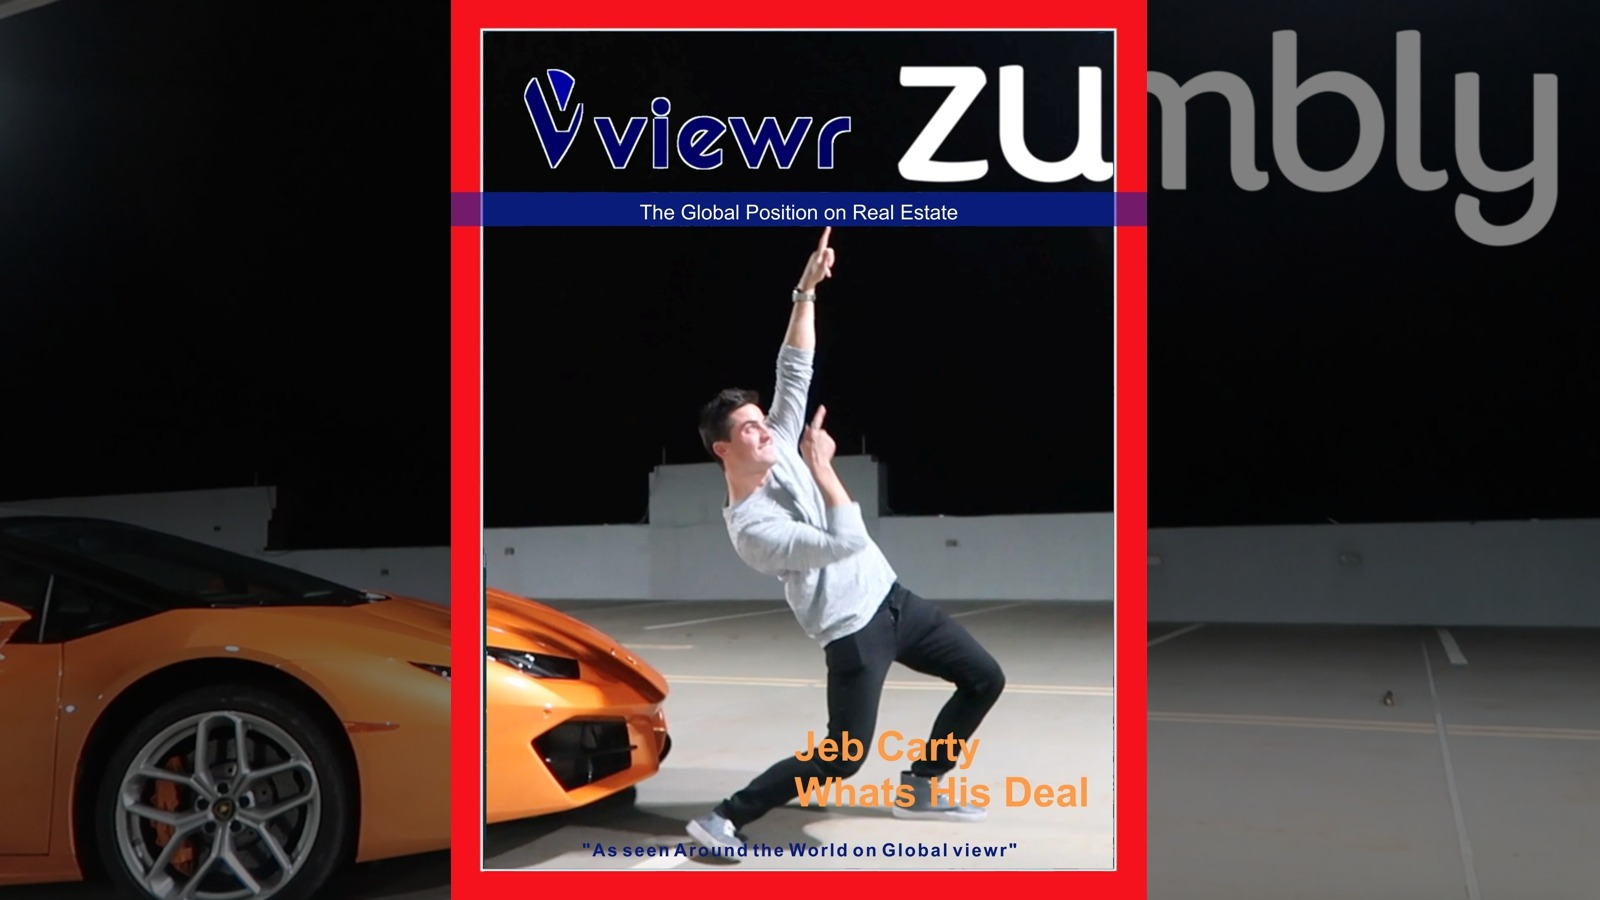 Global viewr Magazine Jeb Carty Whats His Deal